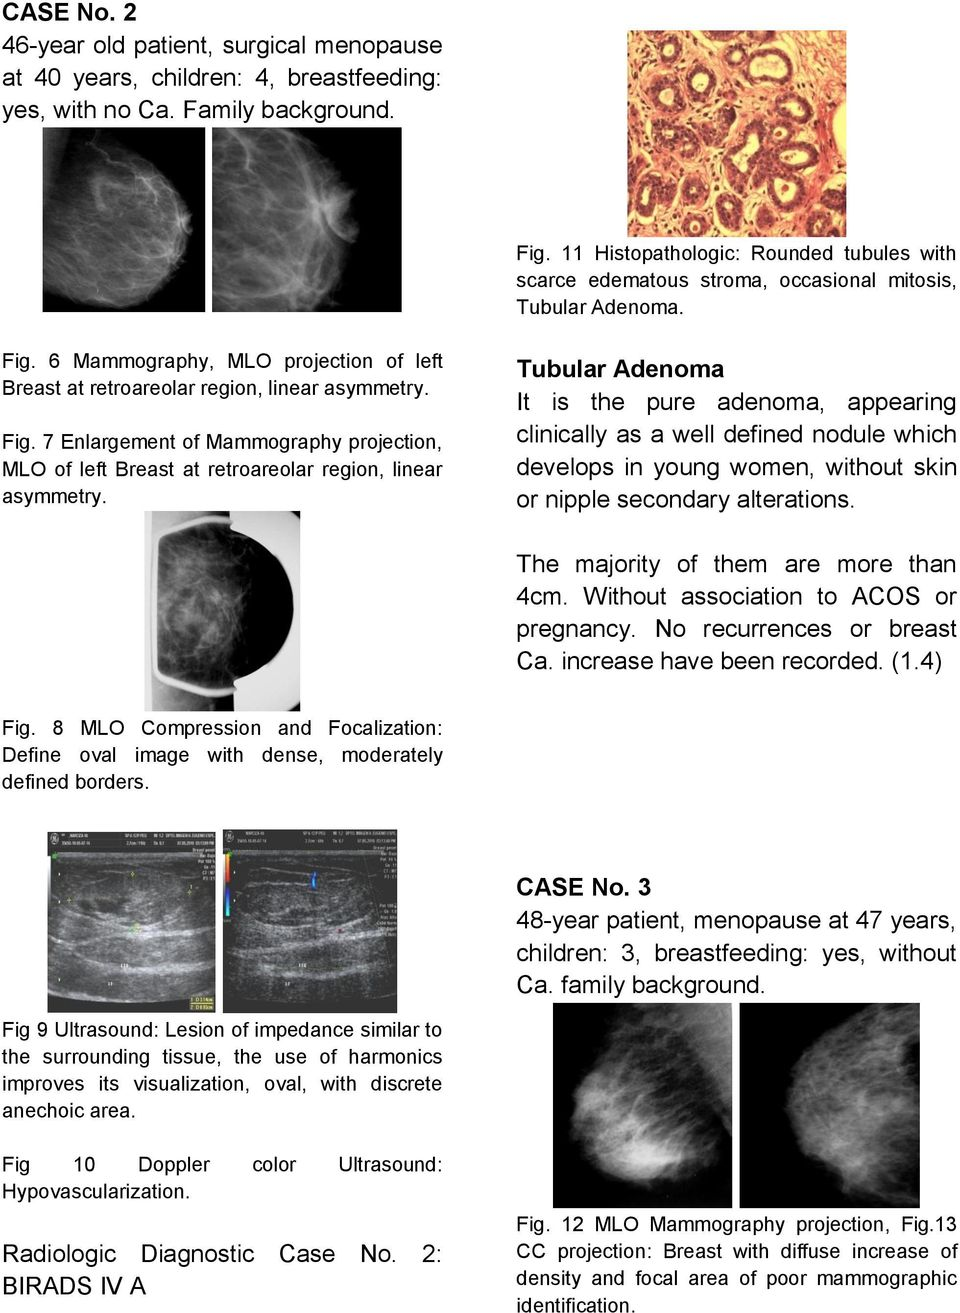 6 Mammography, MLO projection of left Breast at retroareolar region, linear asymmetry. Fig. 7 Enlargement of Mammography projection, MLO of left Breast at retroareolar region, linear asymmetry.